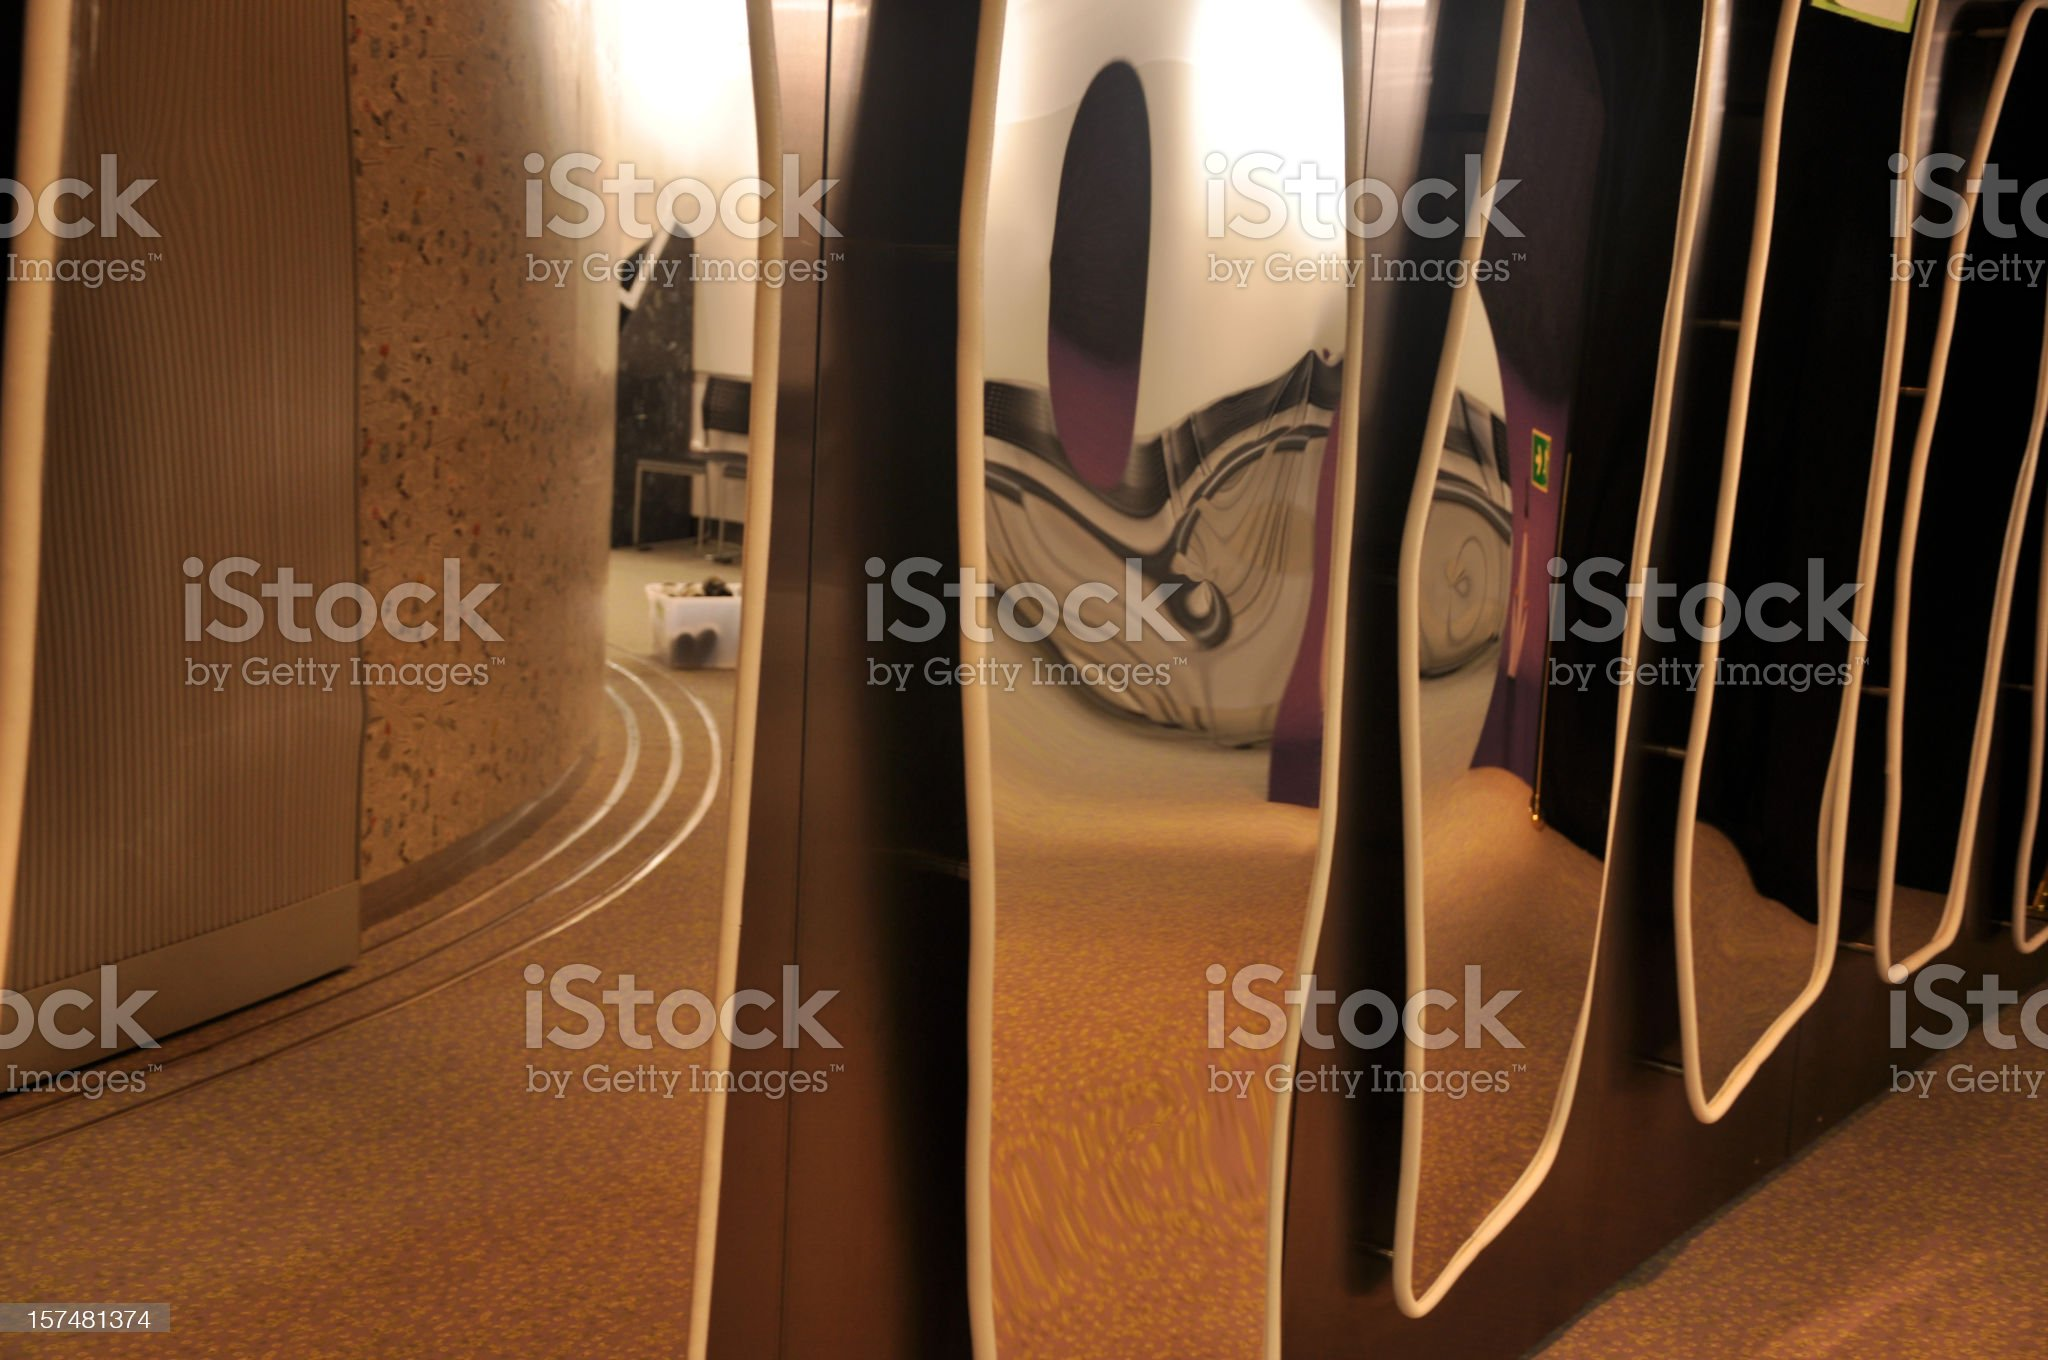 Distorted / Distorting Mirror royalty-free stock photo